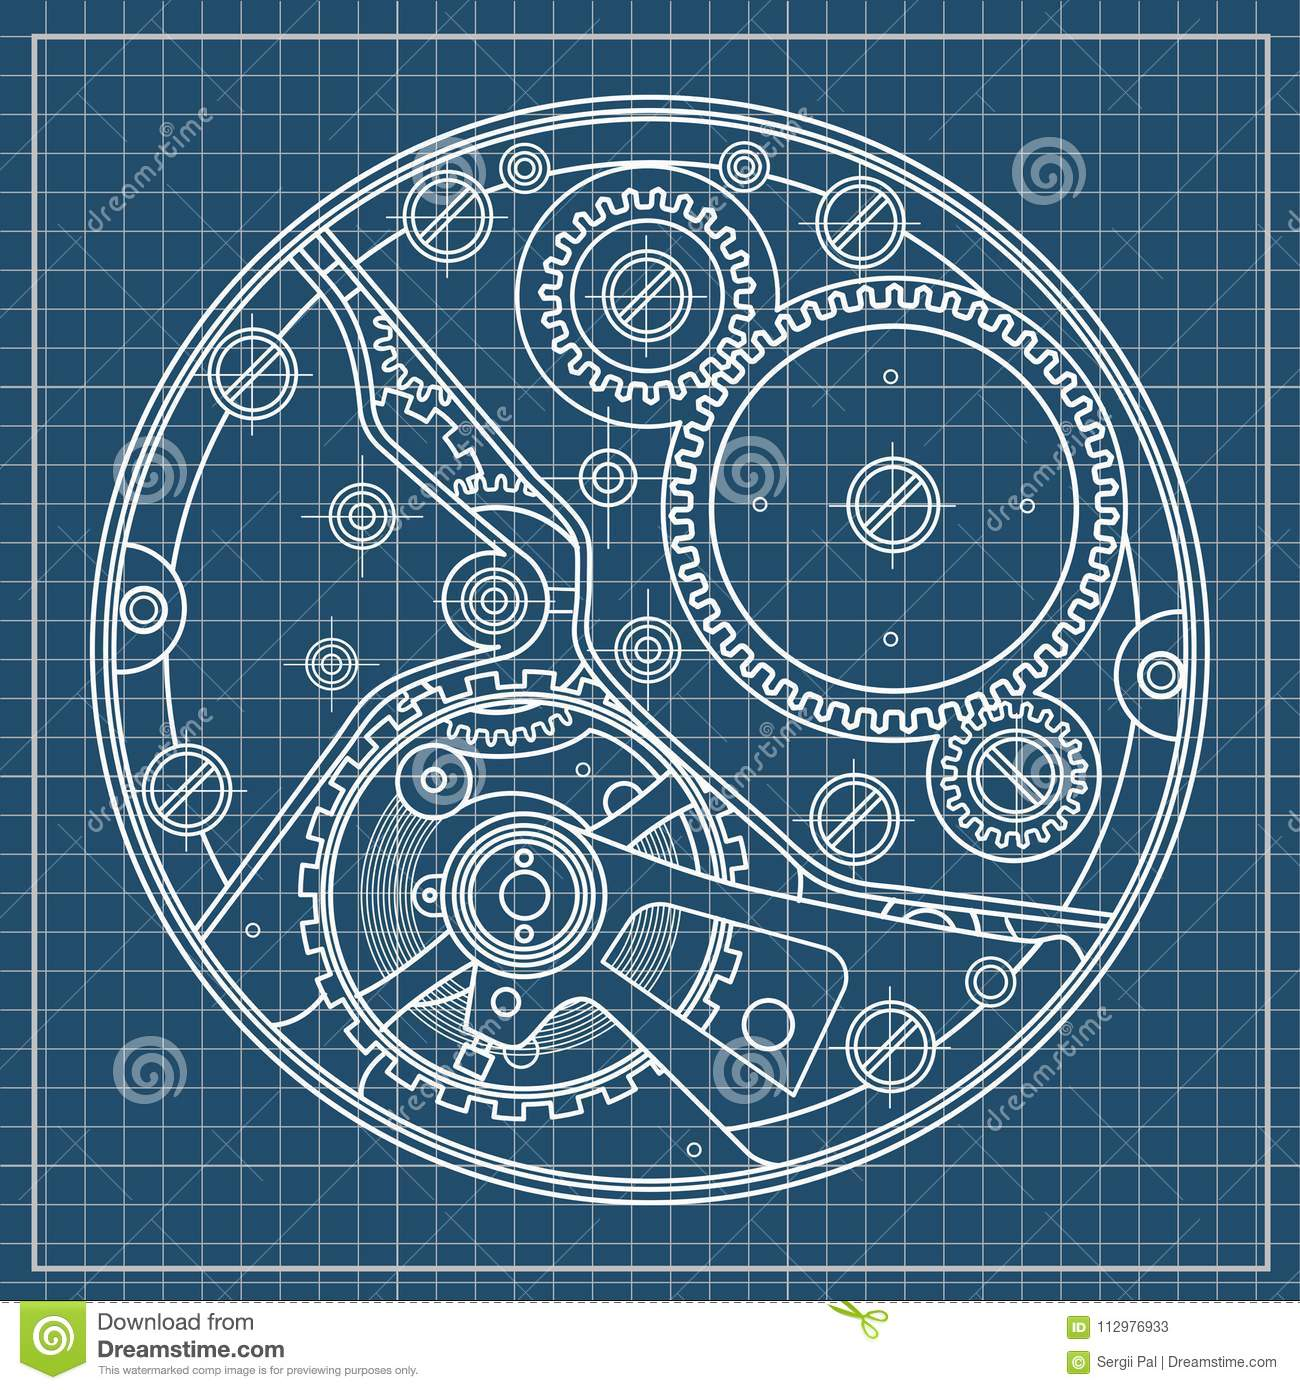 Mechanical watches plan with gears. Drawing of the internal device. It can be used as an example of harmonious